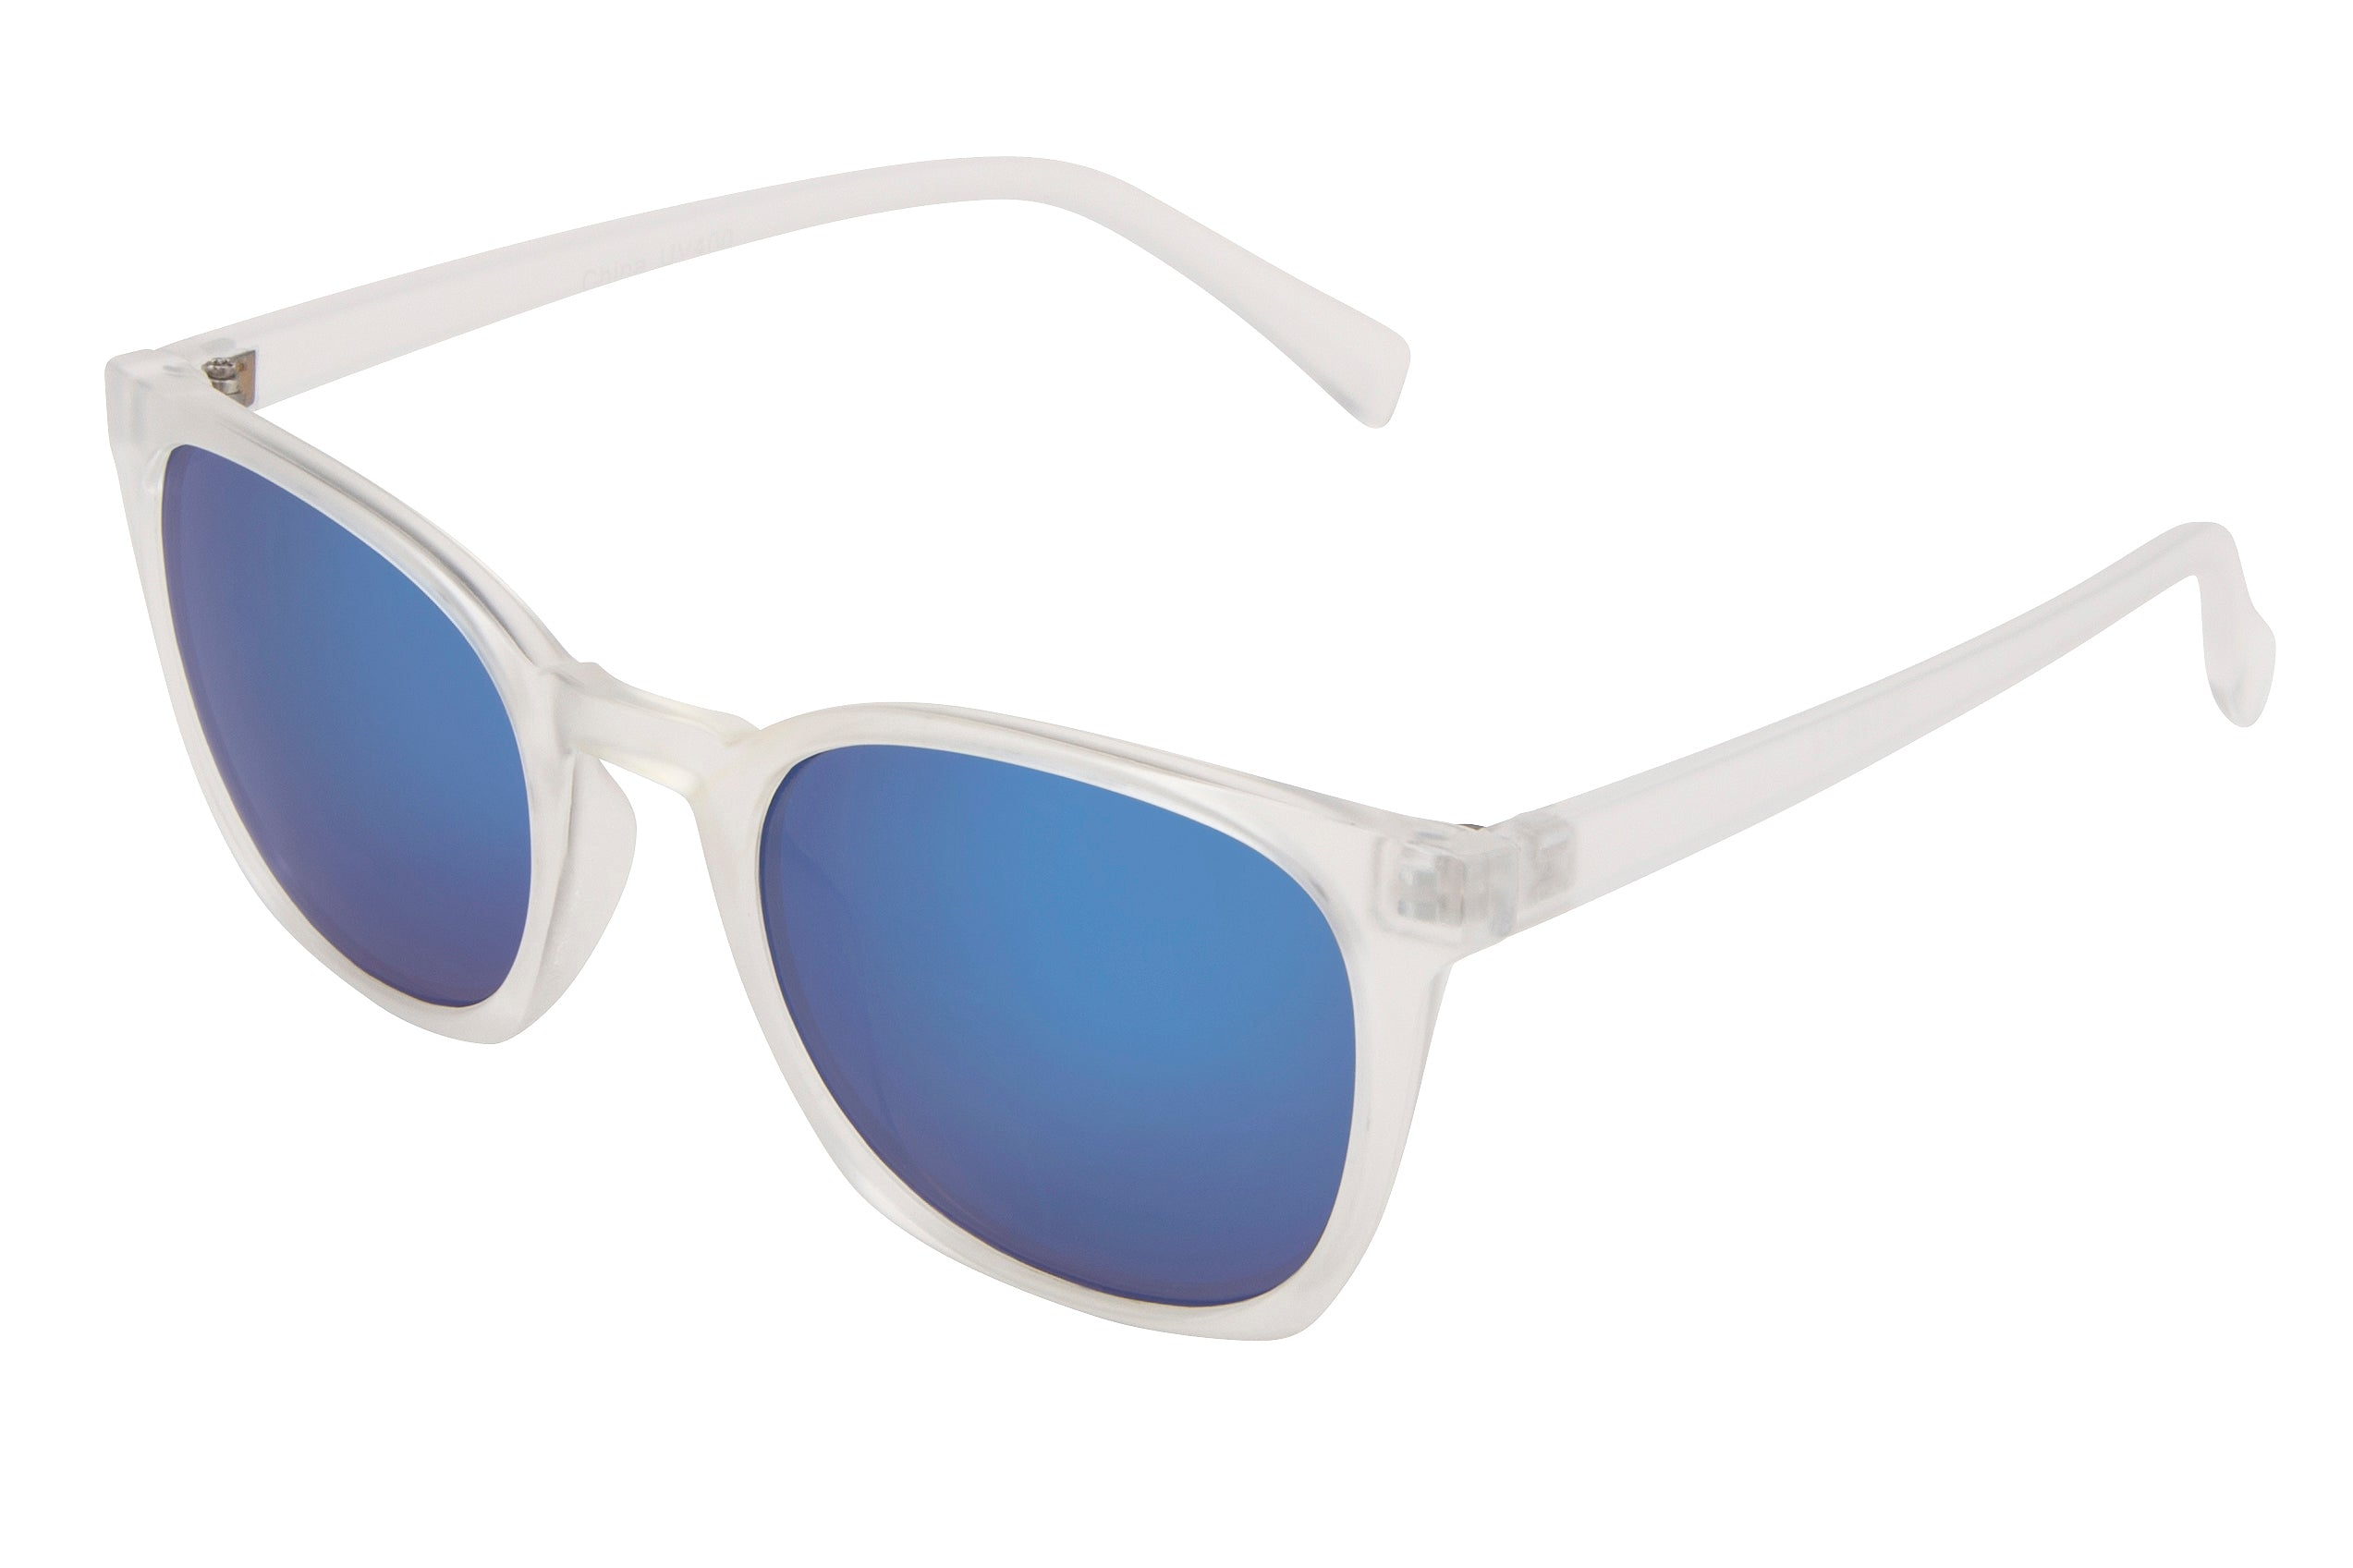 66149 - Vox PC Women's Fashion Sunglasses